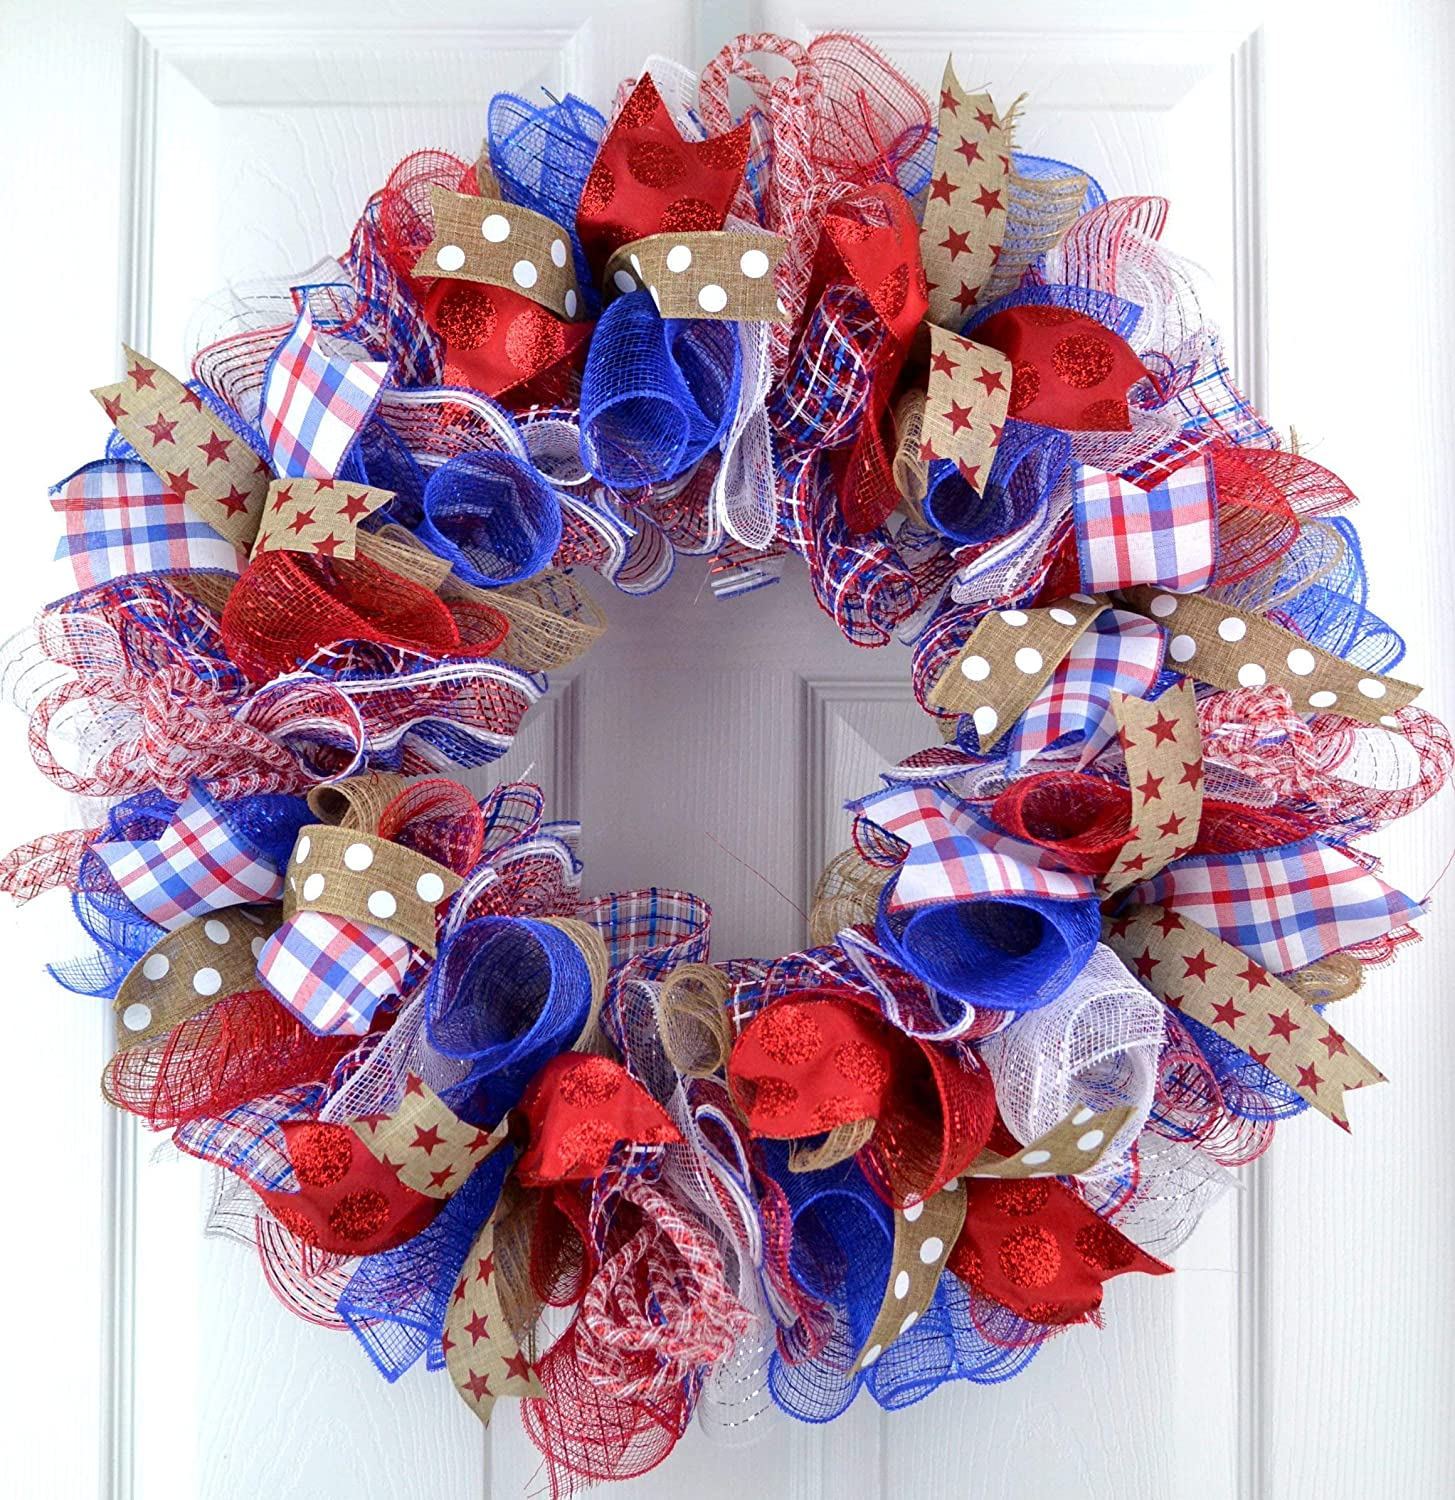 Fourth of July Independence Day Mesh Door Wreath; red white blue jute burlap J1